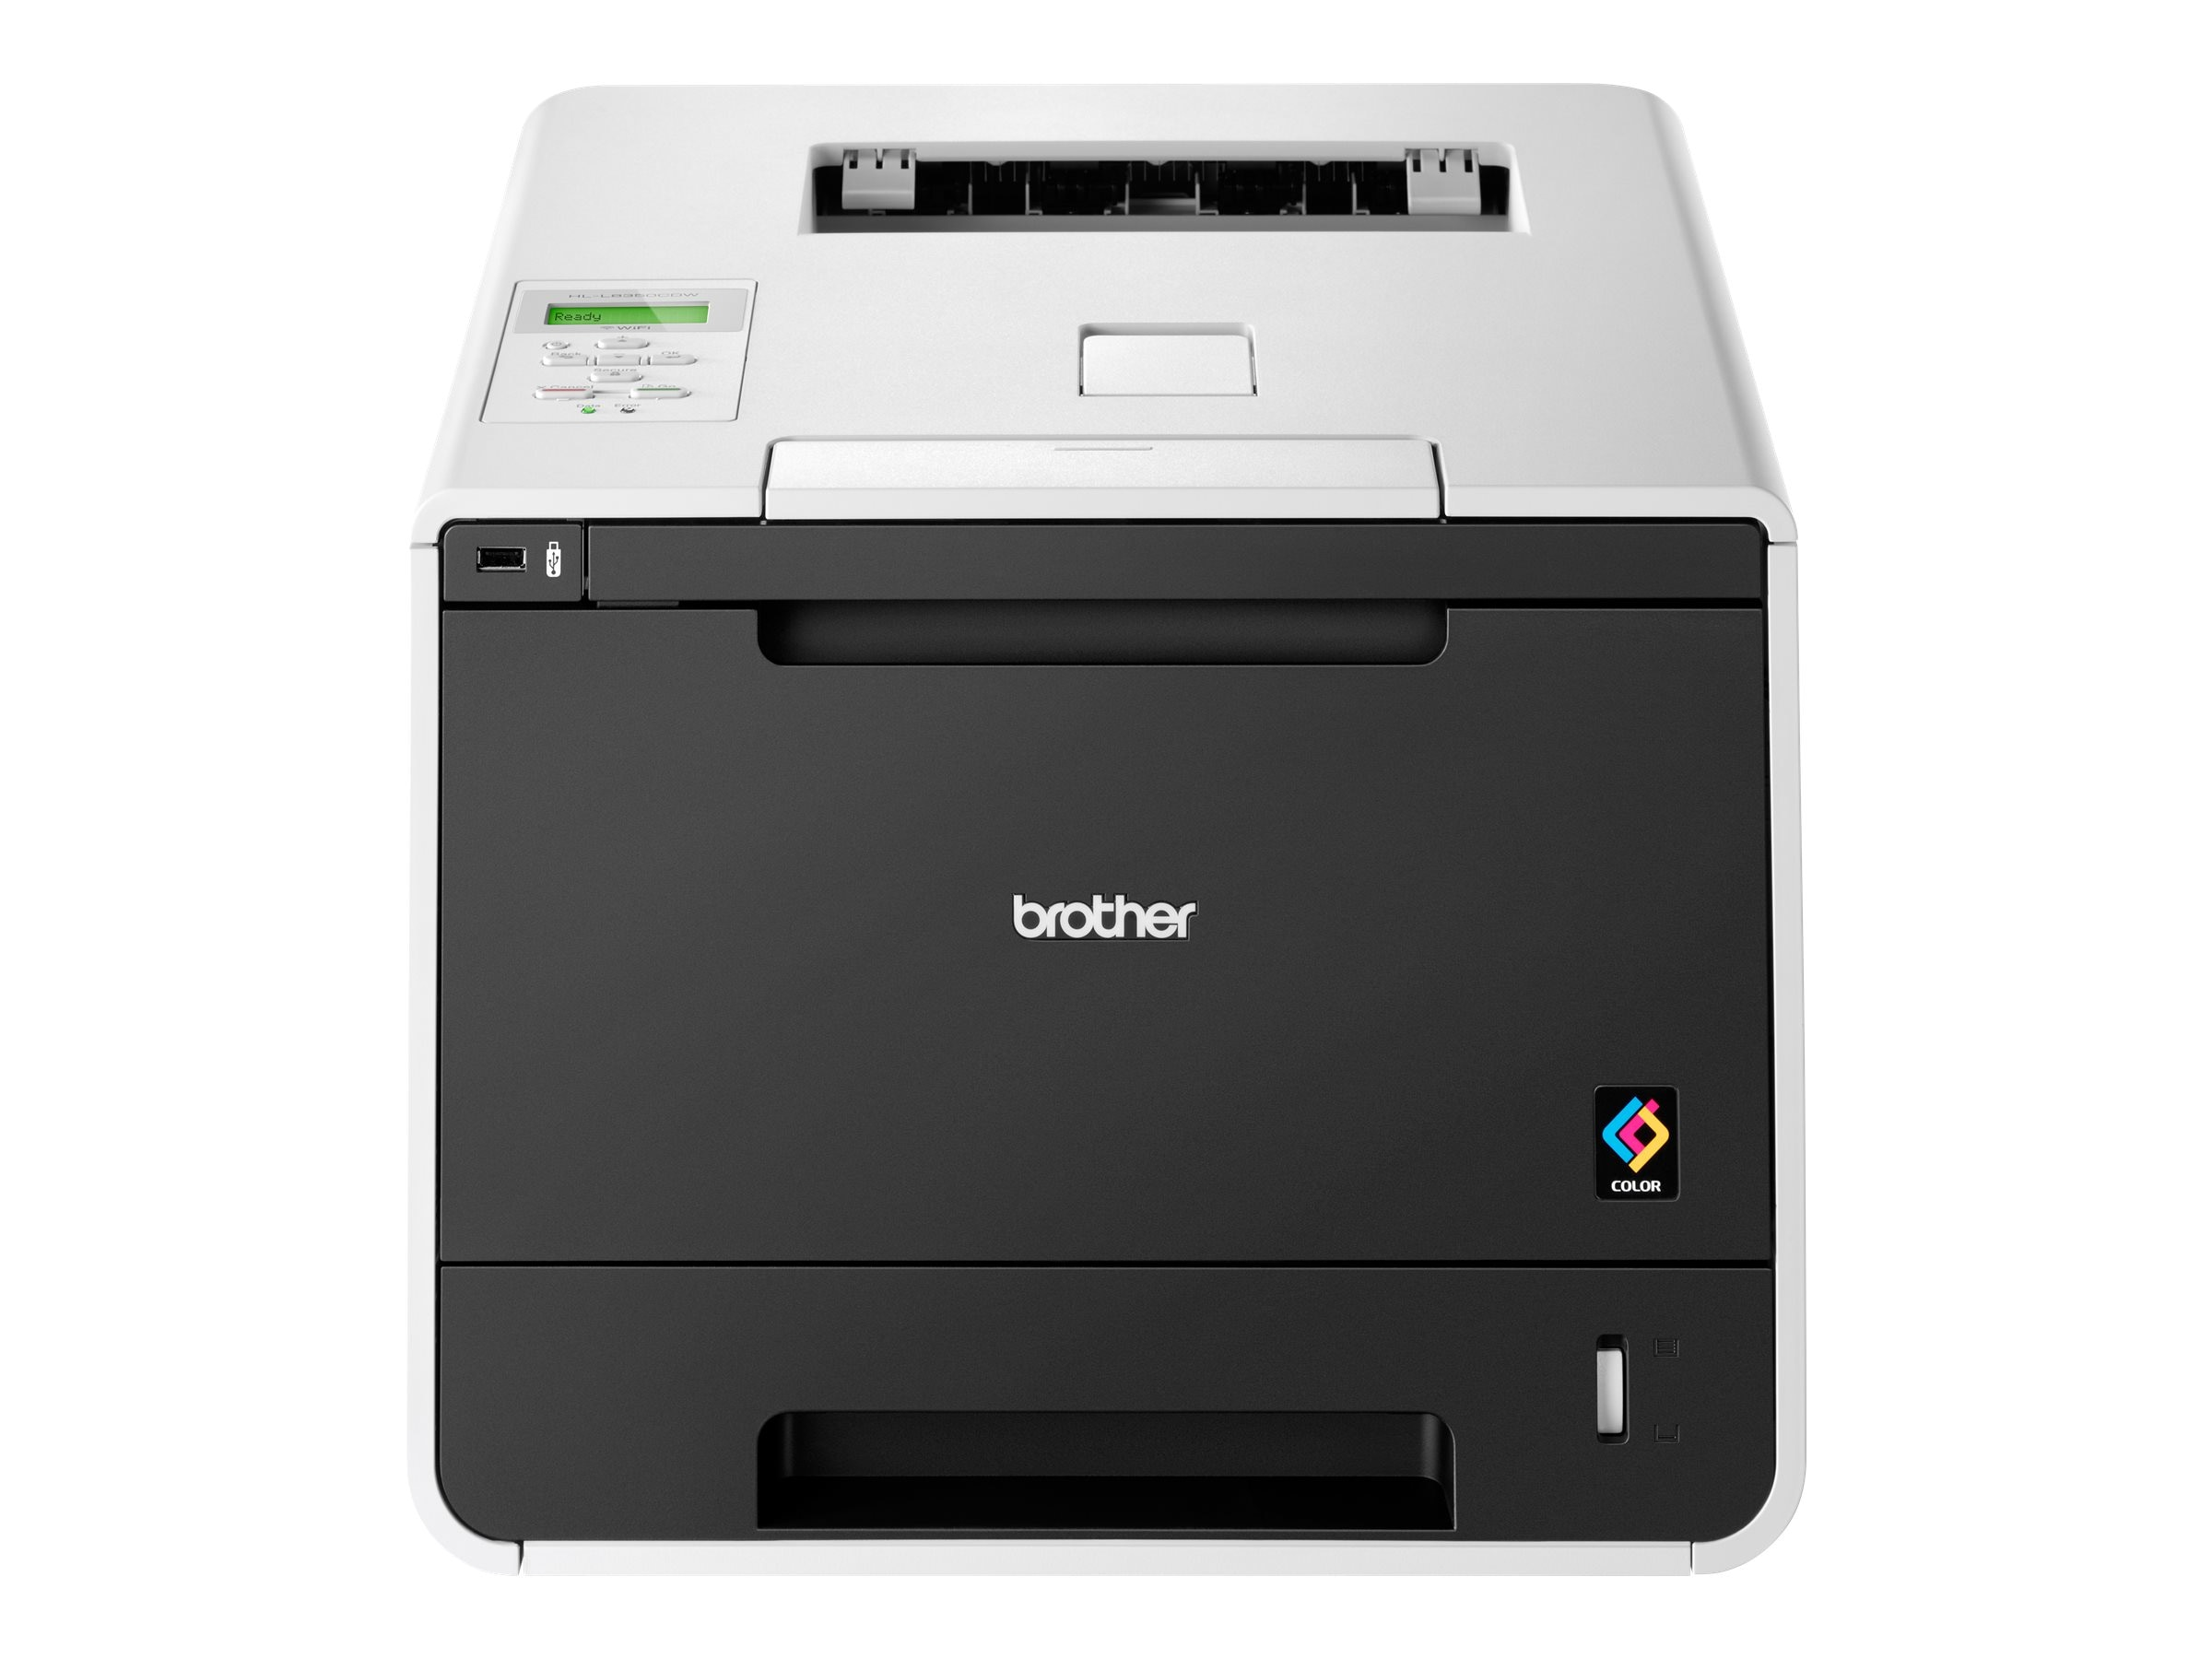 Brother HL-L8350CDW Image 4